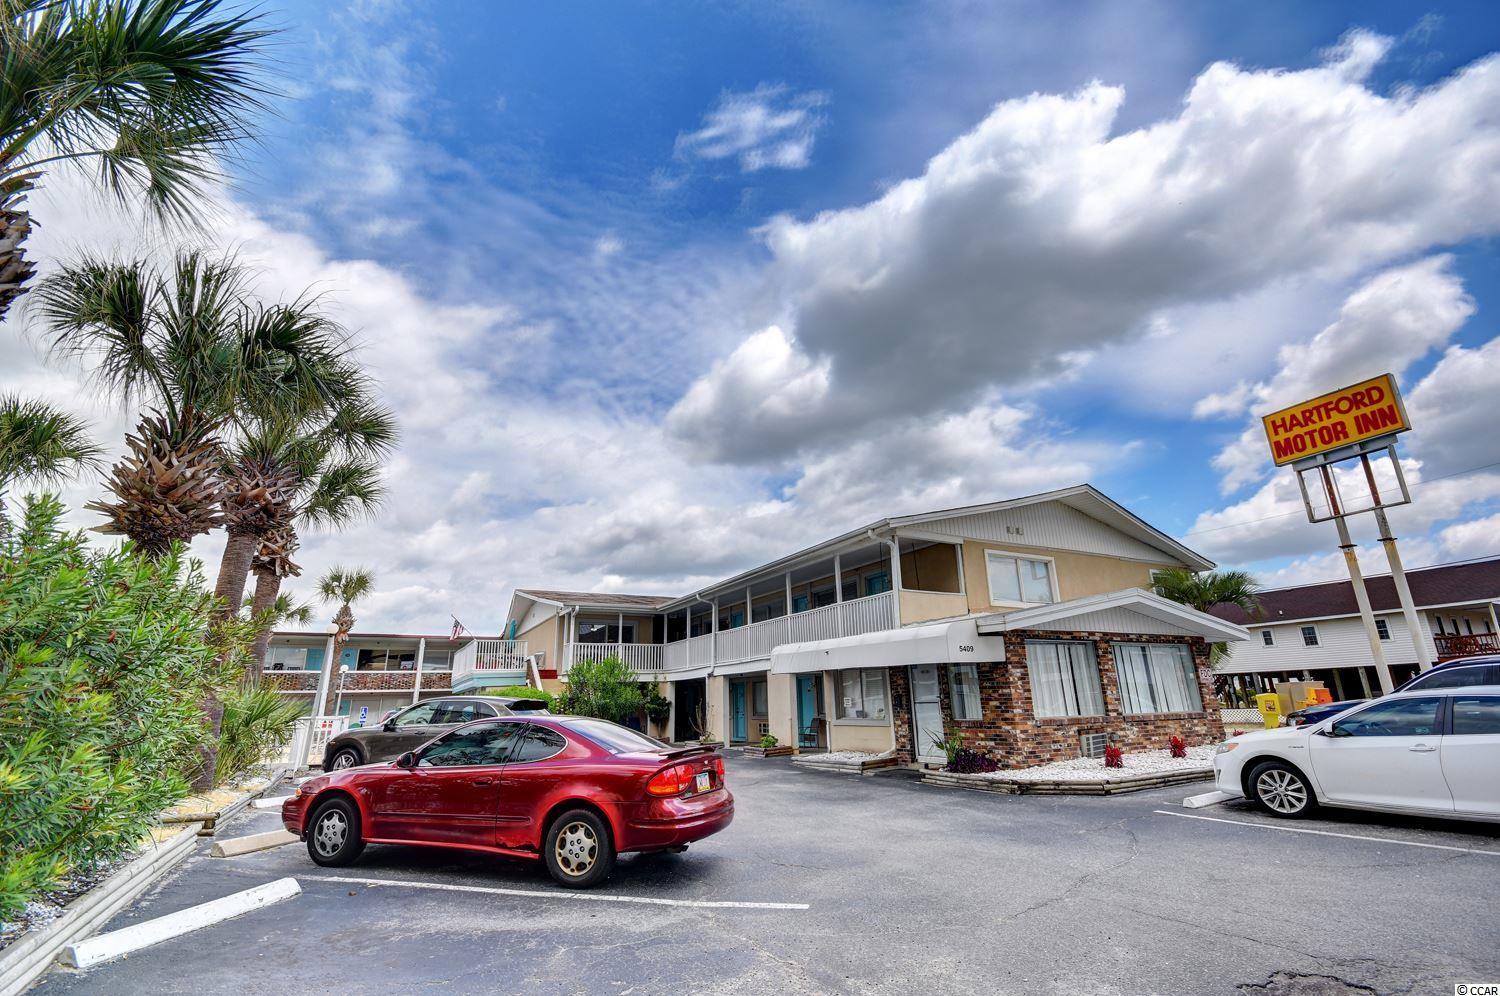 """Unique 3 bed, 3 bath condo within walking distance to the ocean in the charming Hartford Inn! This versatile unit can be used as 1 condo or as a """"lockout"""" 3 bedroom condo. There is a full kitchen in the main living area. Hartford Inn offers an outdoor pool and is located in the quaint Cherry Grove section of the Grand Strand right across the street from the ocean. The HOA for this community covers ALL utilities (including electricity in the unit) as well as insurance on the building. The Cherry Grove area is highly sought after and offers easy access to Highways 17, 9, 90, and 31. There are plenty of restaurants, grocery stores, gas stations, and hospitals nearby and Barefoot Landing, Tanger Outlets, and other entertainment can be reached in less than 15 minutes. This one won't last on this market so put it at the top of the list and grab it while you can!"""